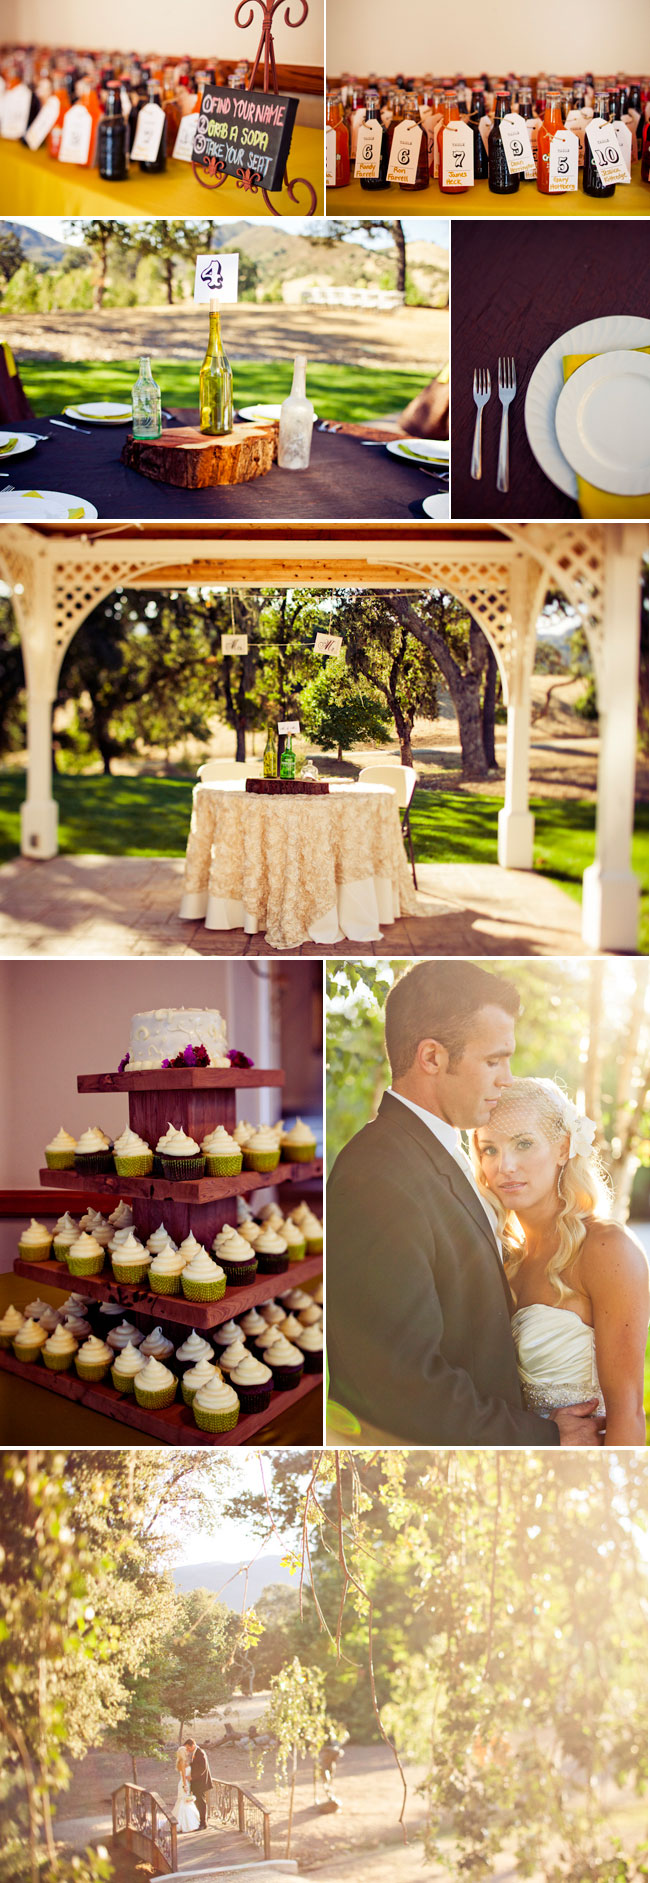 wedding at Spanish Oaks Ranch with cupcakes, gazebo, and soda bottles for seating